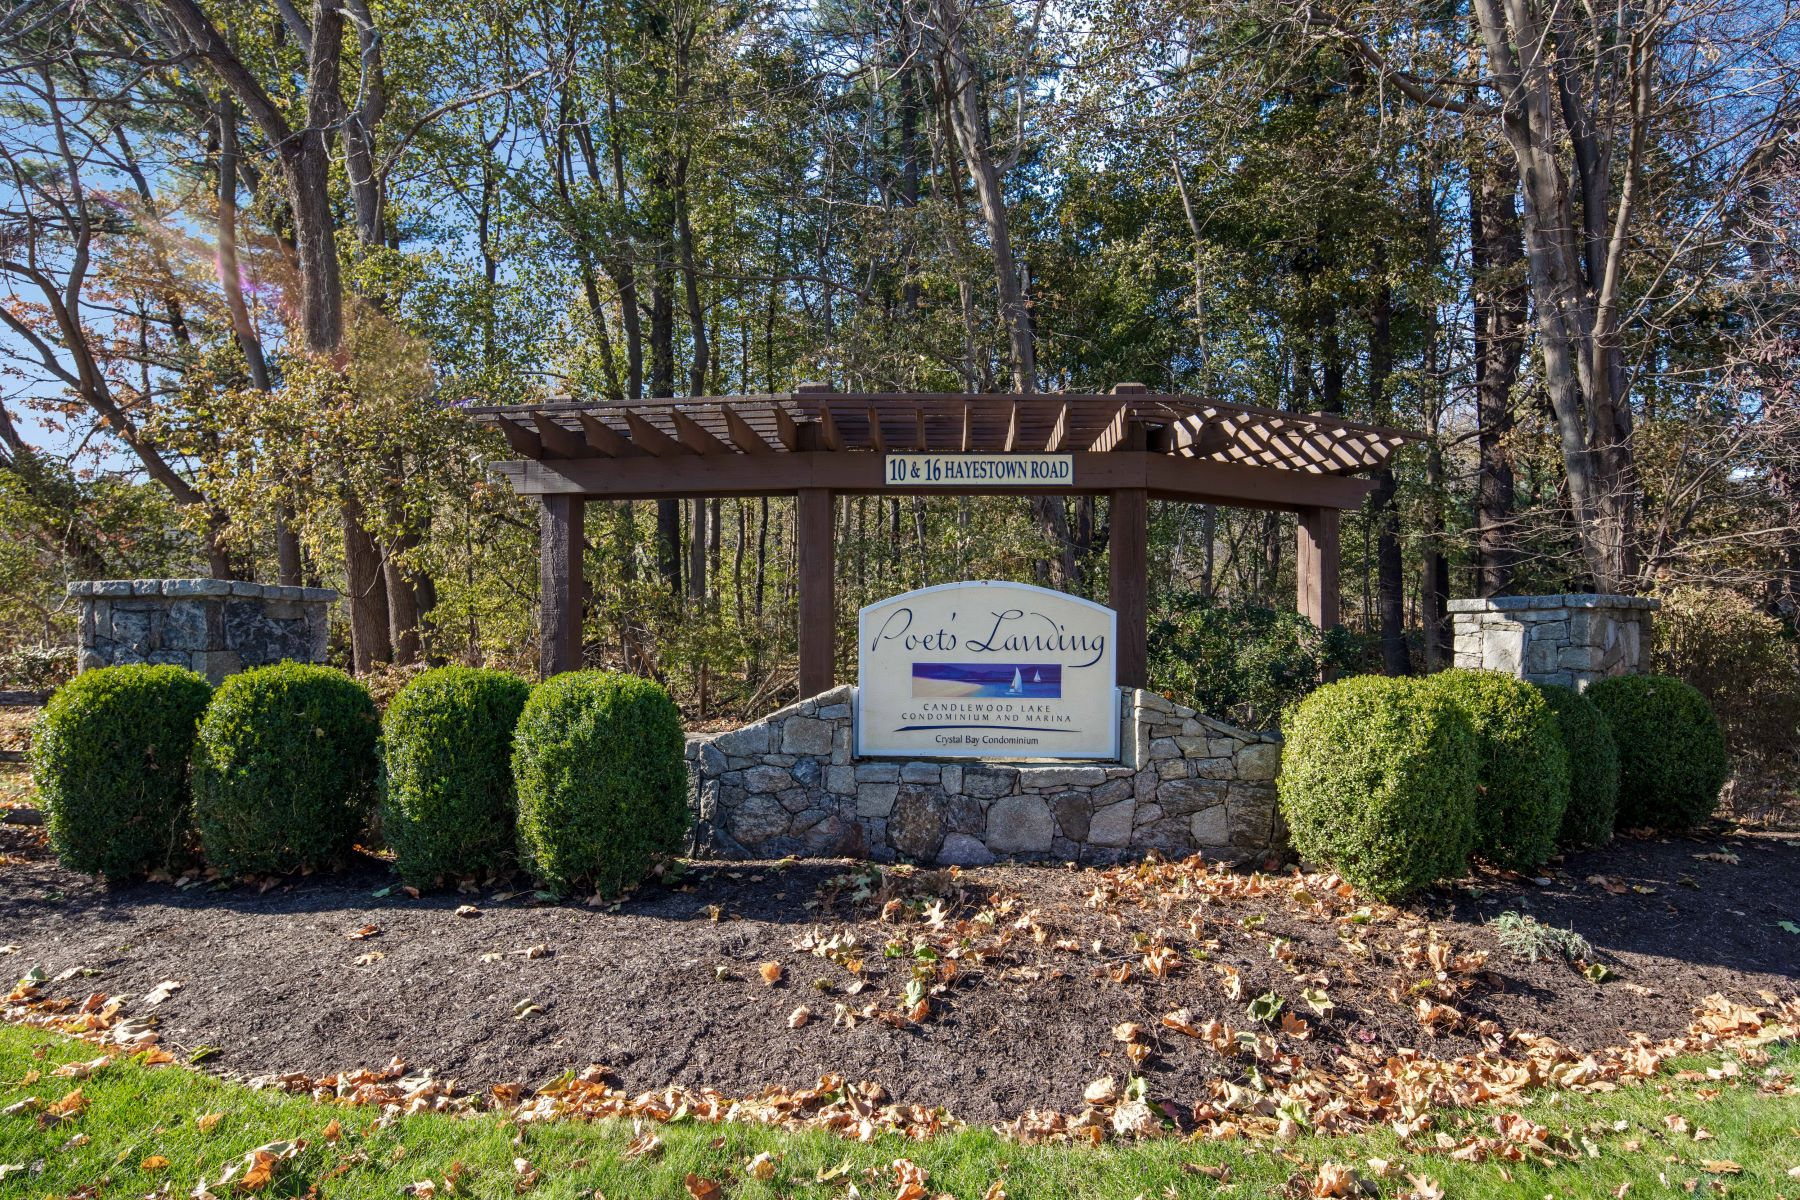 Additional photo for property listing at Candlewood Lake Direct Waterfront 16 Hayestown Road, A101, Danbury, Connecticut 06811 Stati Uniti